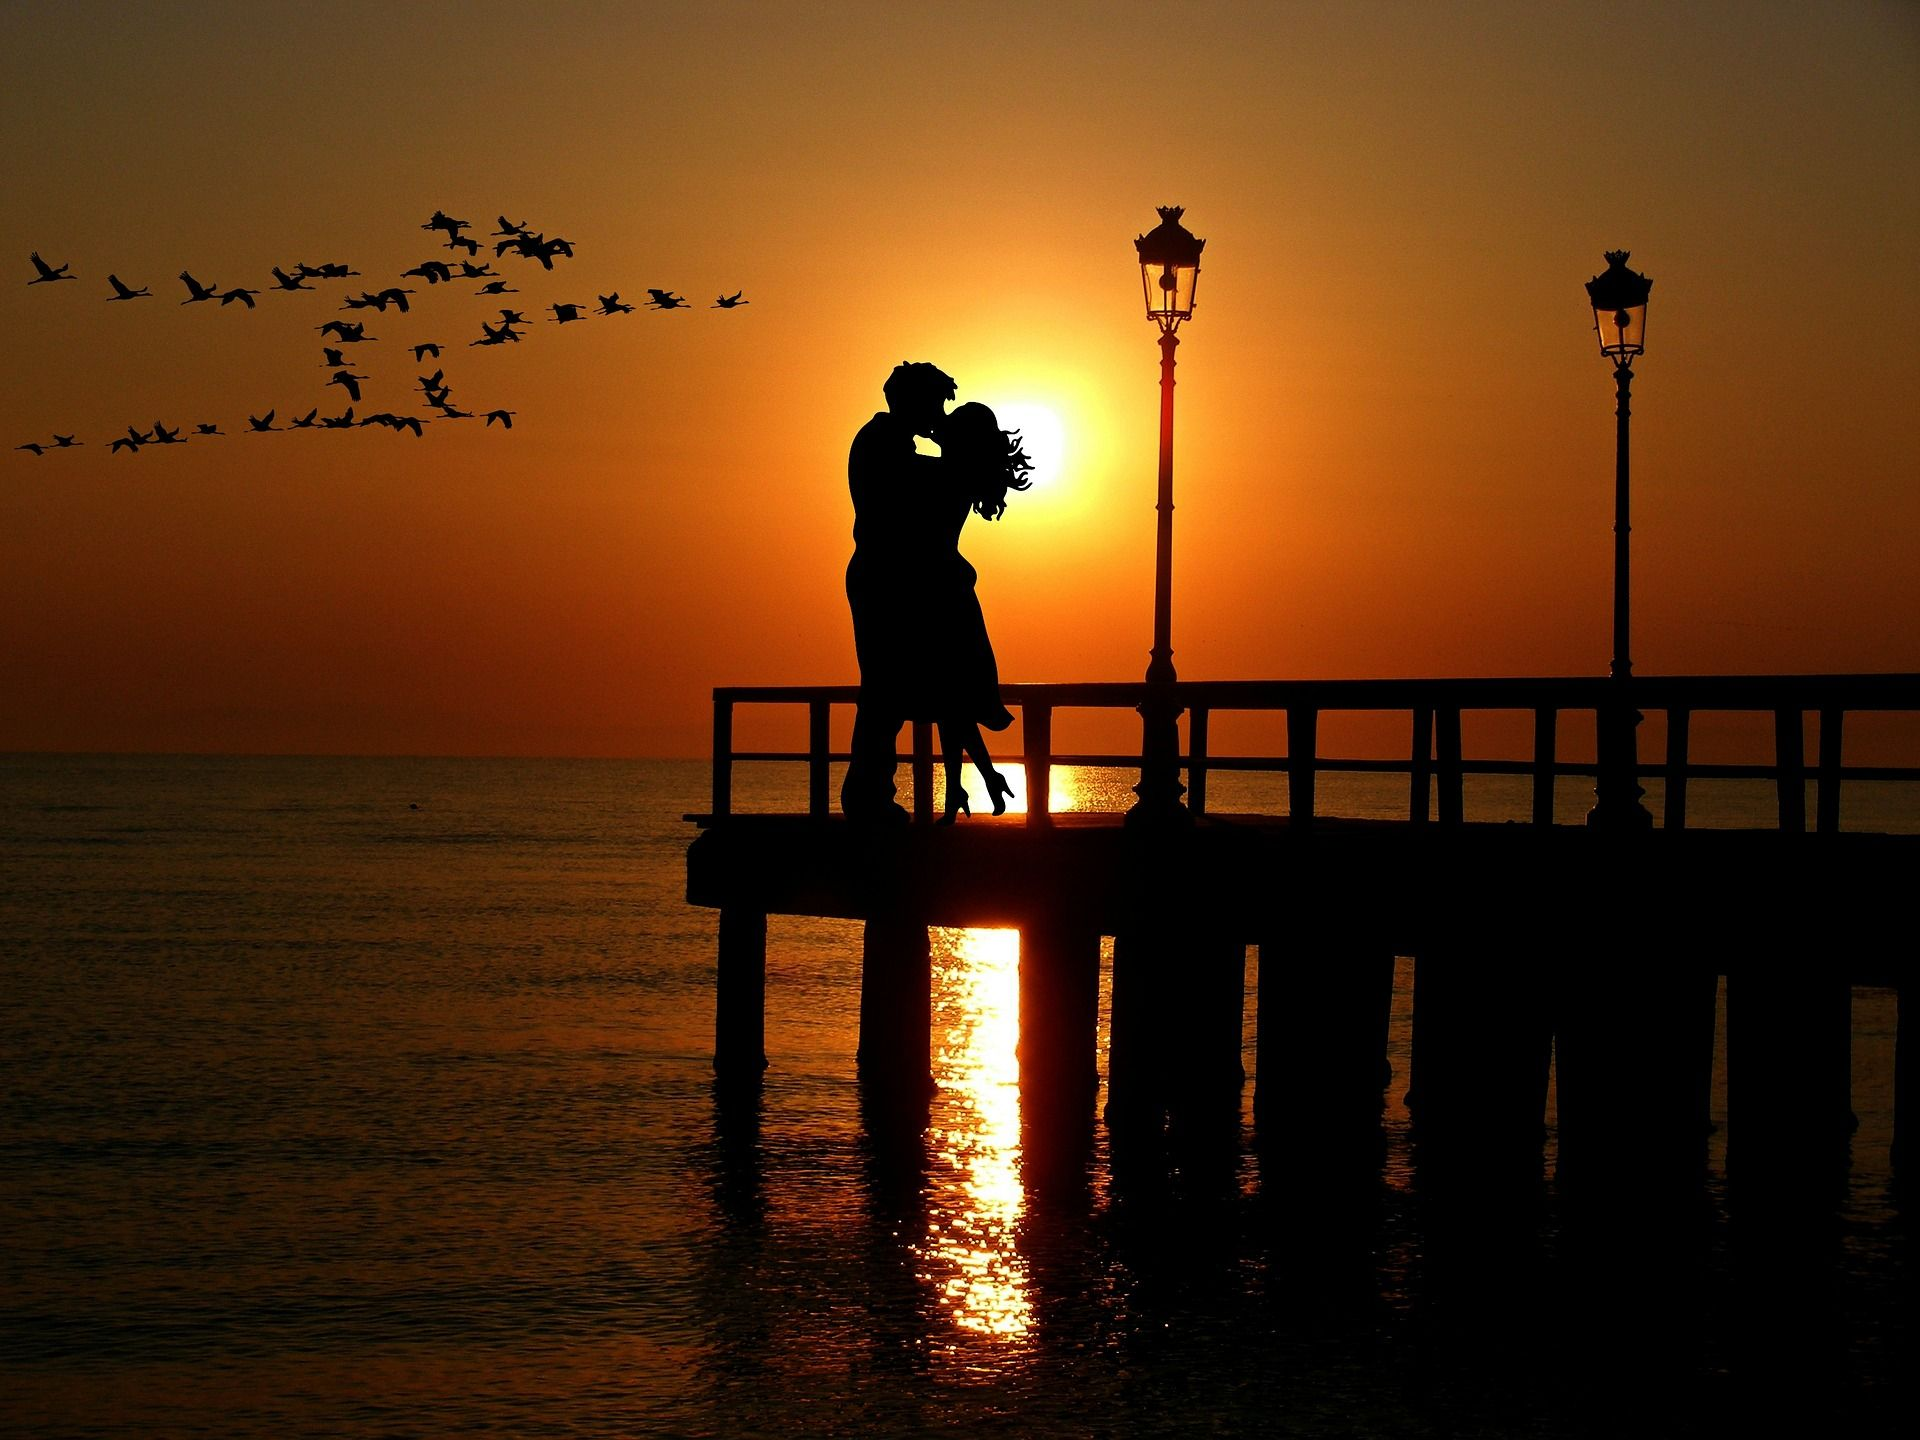 500 Greatest Romantic Hindi Love Songs Of All Time Entertainment Blog #ragecreation new hindi song, best romantic hindi songs, hot hindi song, new romantic hindi songs, sad song 2019, old hindi song, dj hindi enjoy evergreen romantic old hindi songs play nonstop or select one from the playlist and fall in love once again only on bollywood classics track. 500 greatest romantic hindi love songs